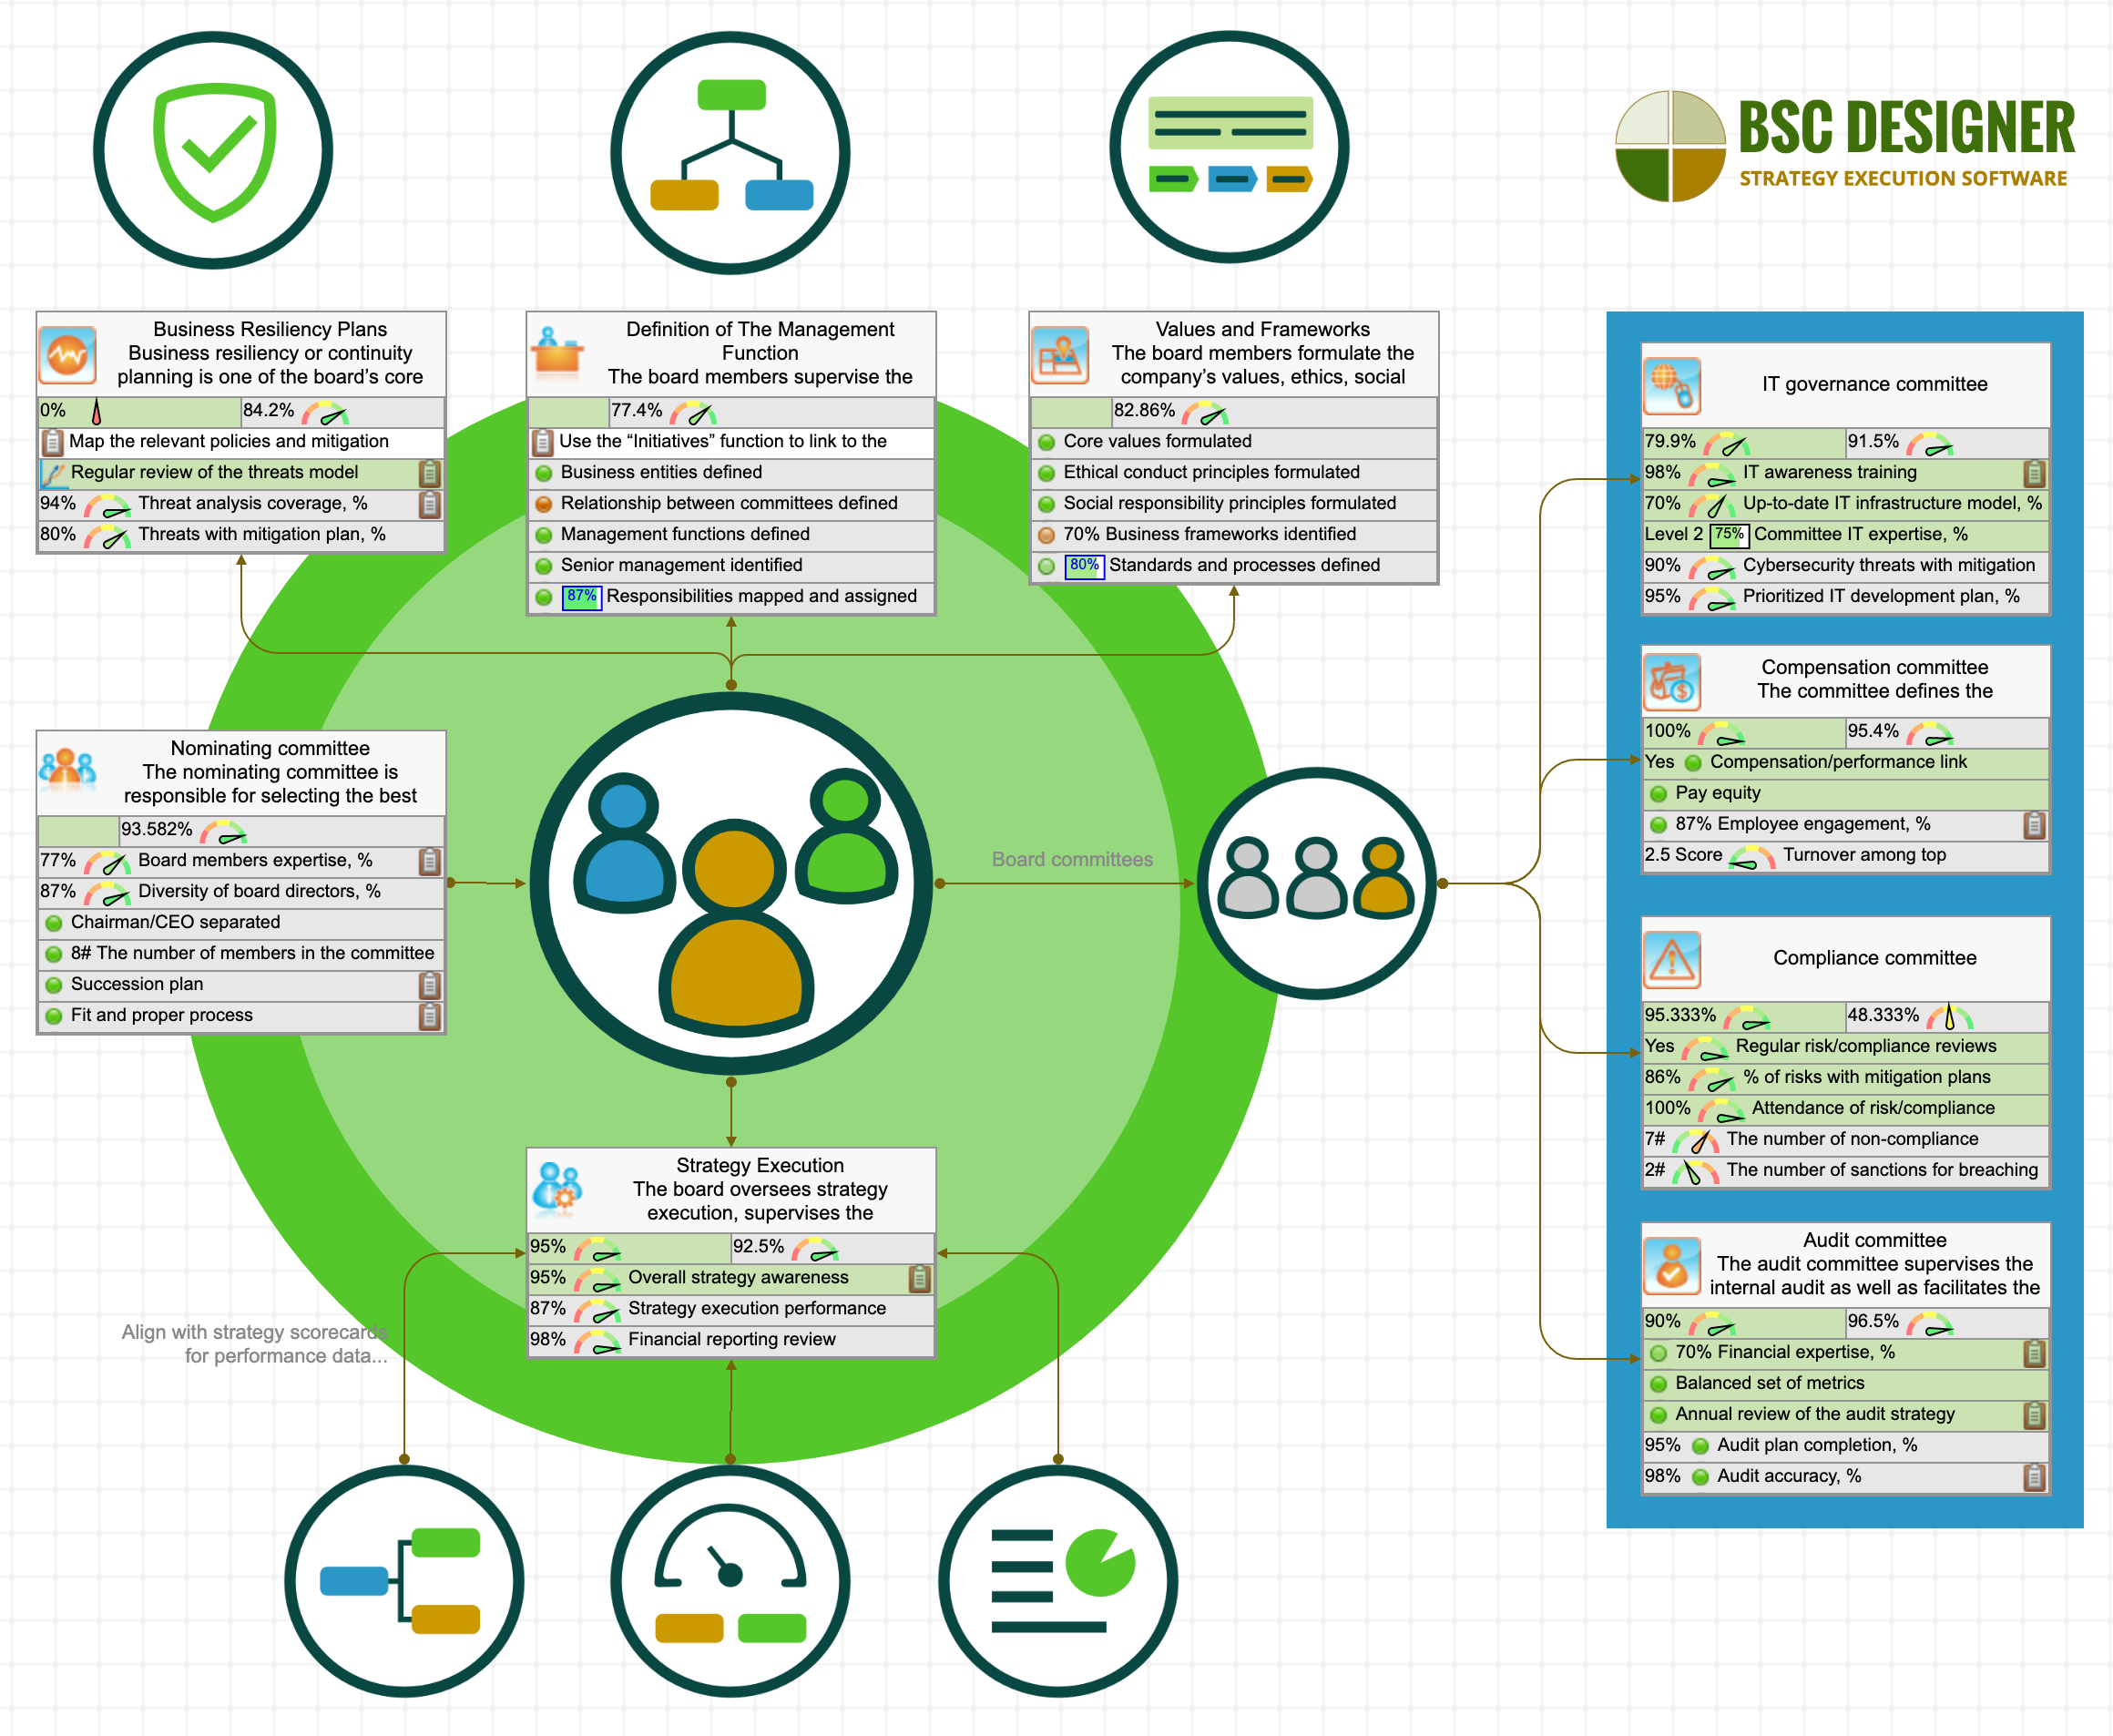 Corporate Governance Dashboard with KPIs